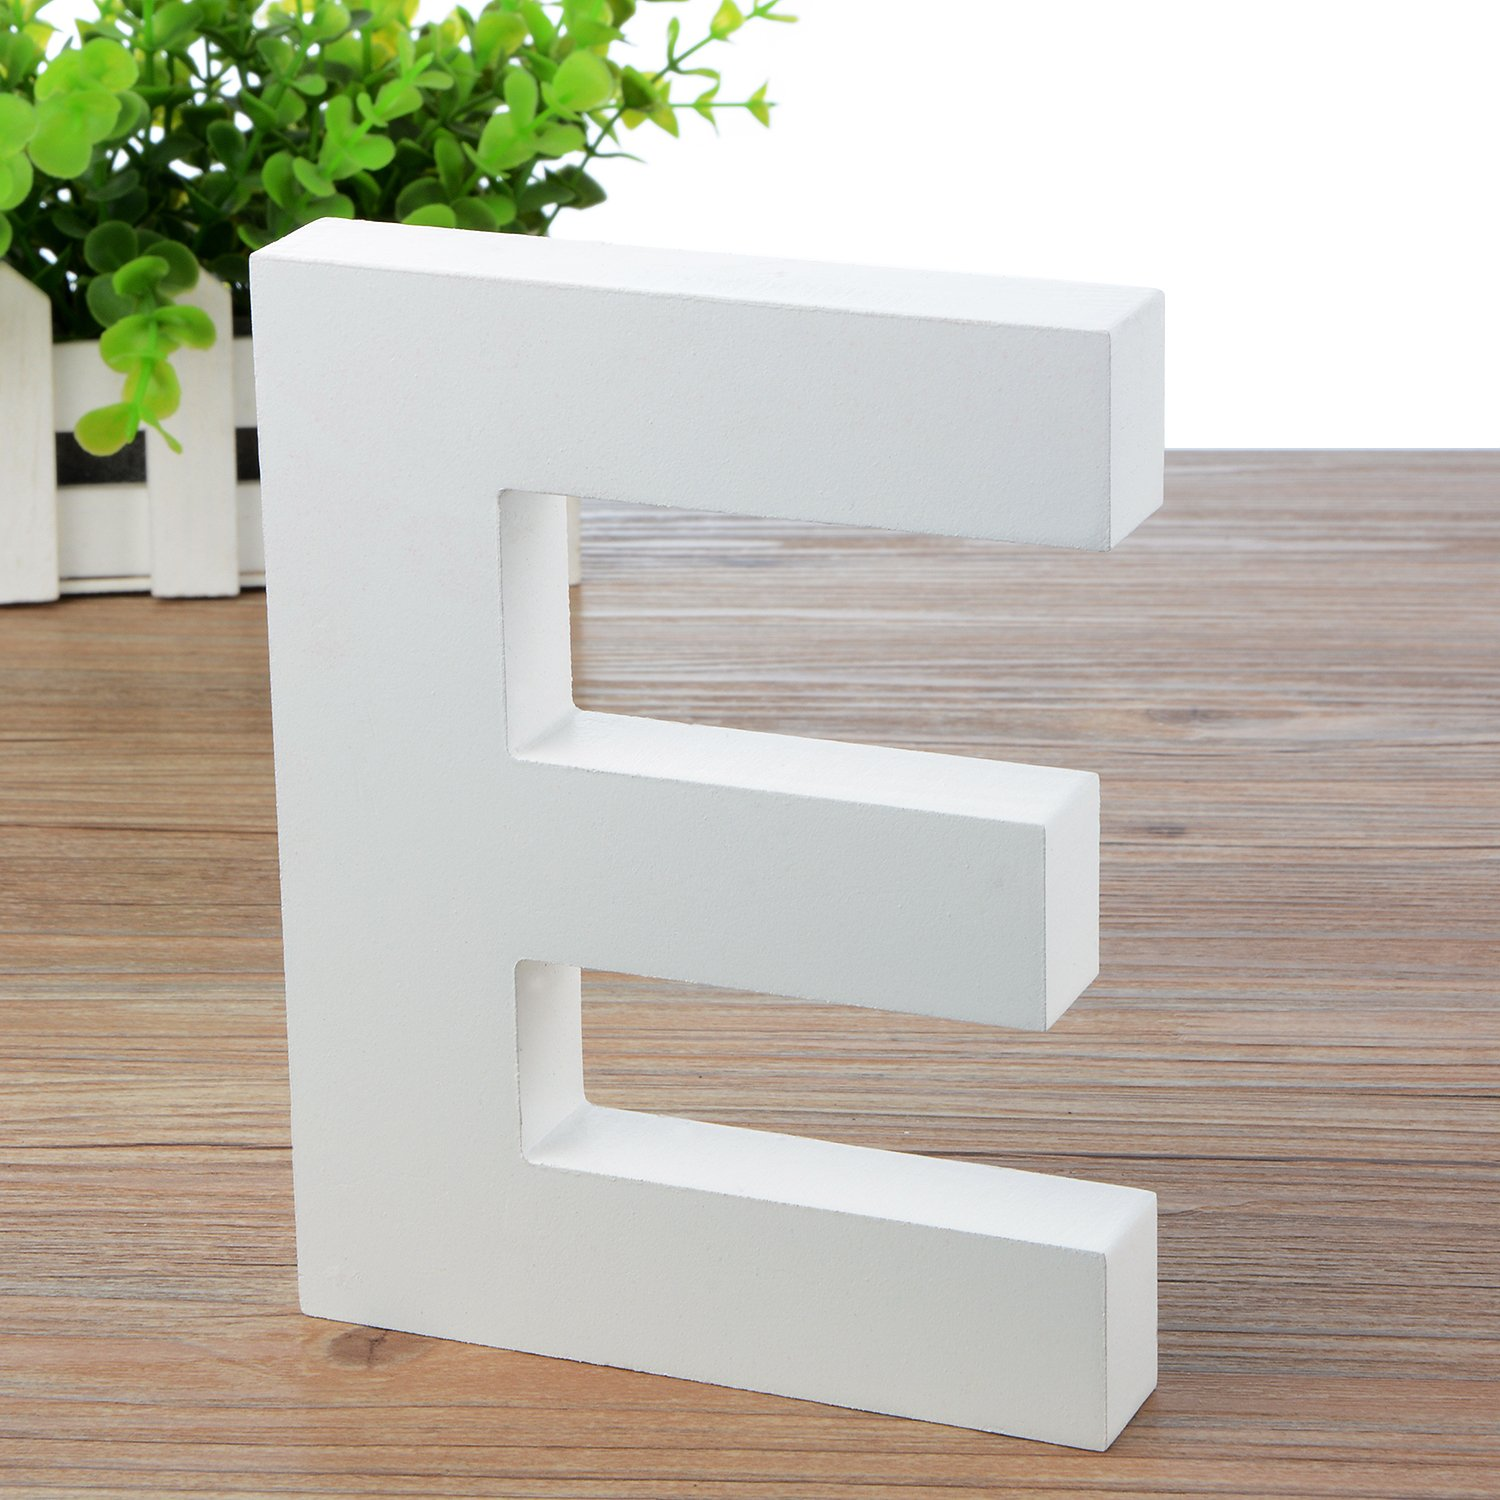 5.9(L)*4.5(H)*0.8(W)/15 * 11.5 * 2cm Large Wall Letters Marquee Alphabet S Wood Wooden Number DIY Block Words Sign Hanging Decor Letter for Home Bedroom Office Wedding Party Decor White Zebery Zebery001